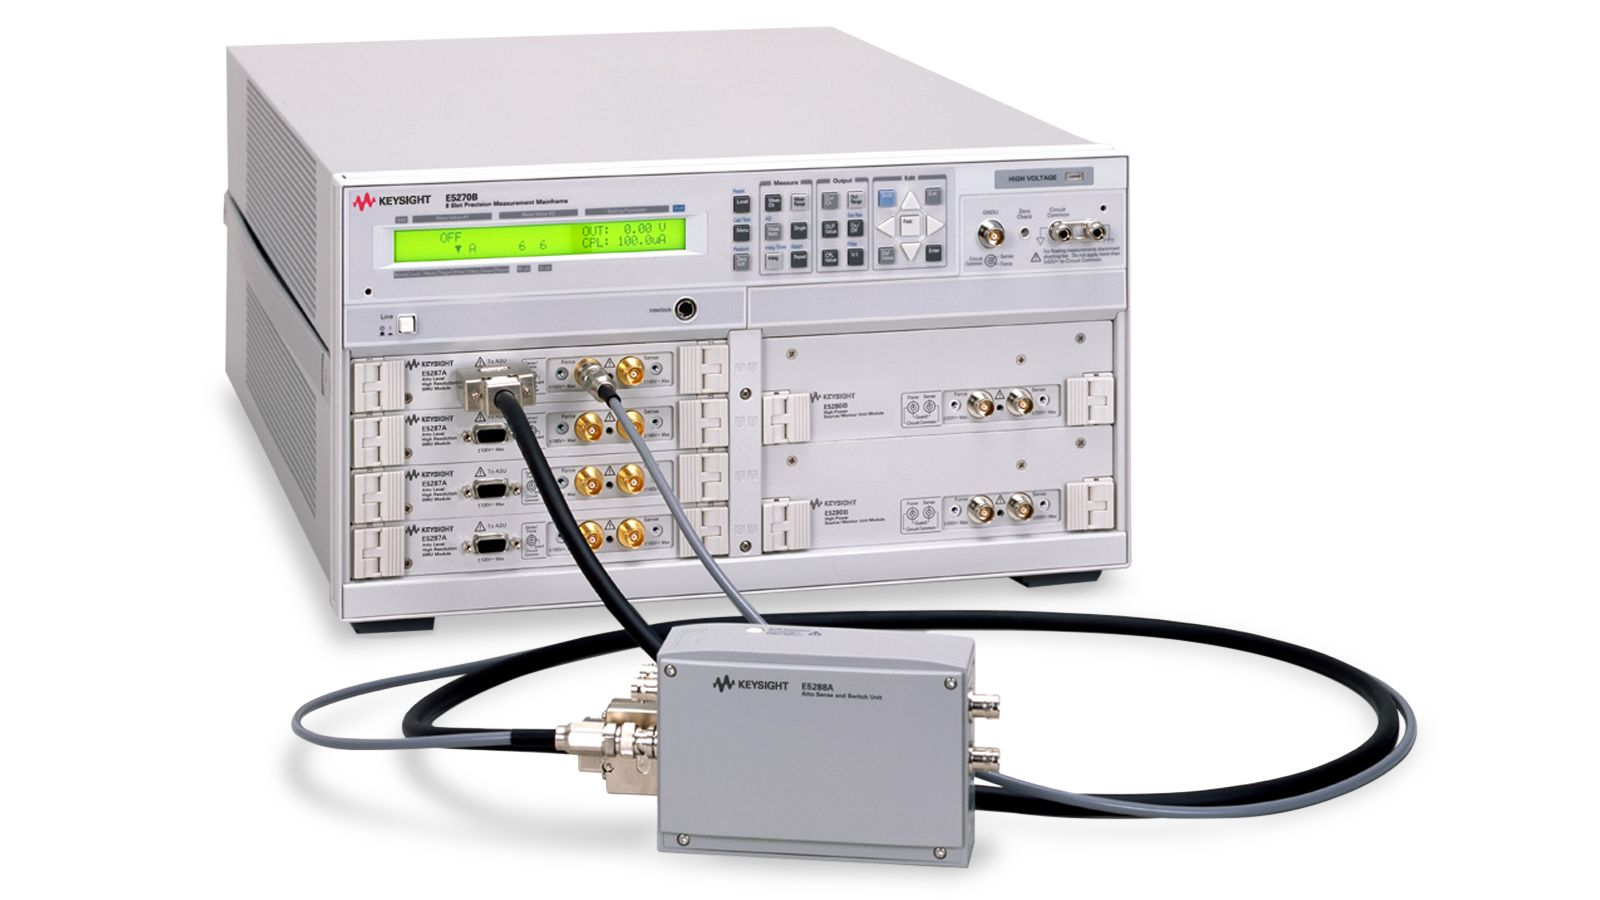 Keysight Source Measure Unit